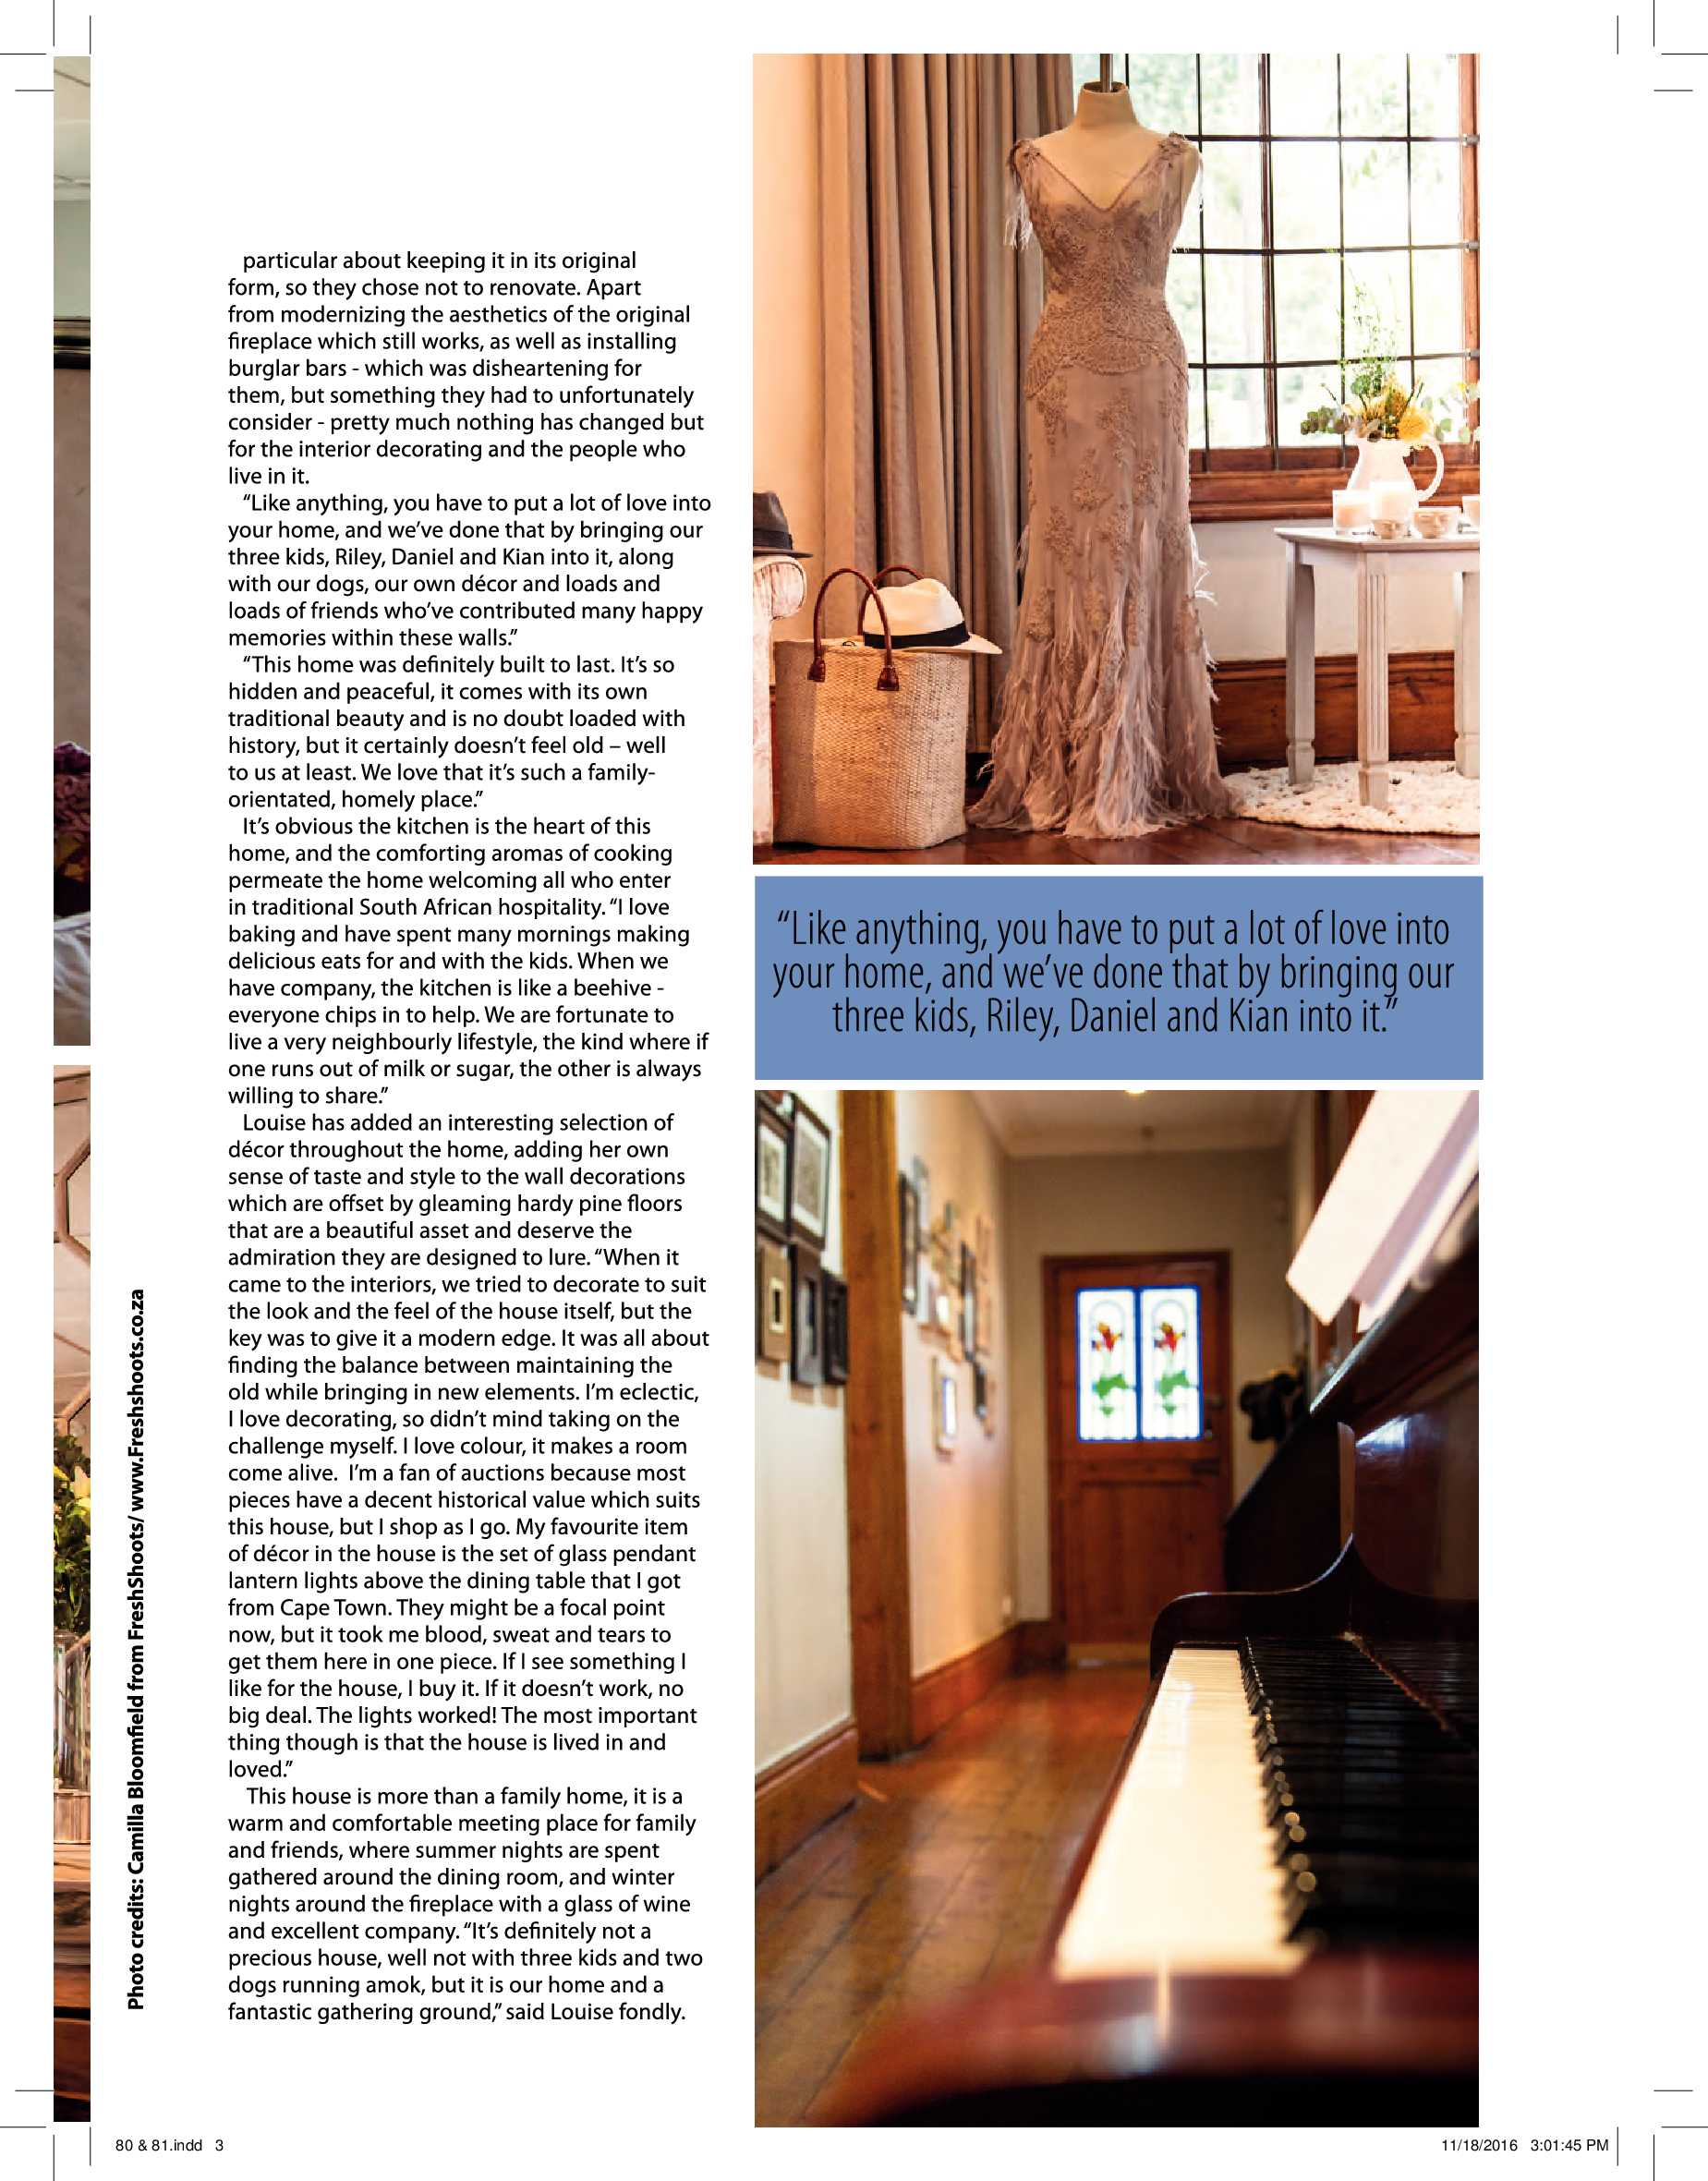 durban-get-it-magazine-december-2016-epapers-page-83